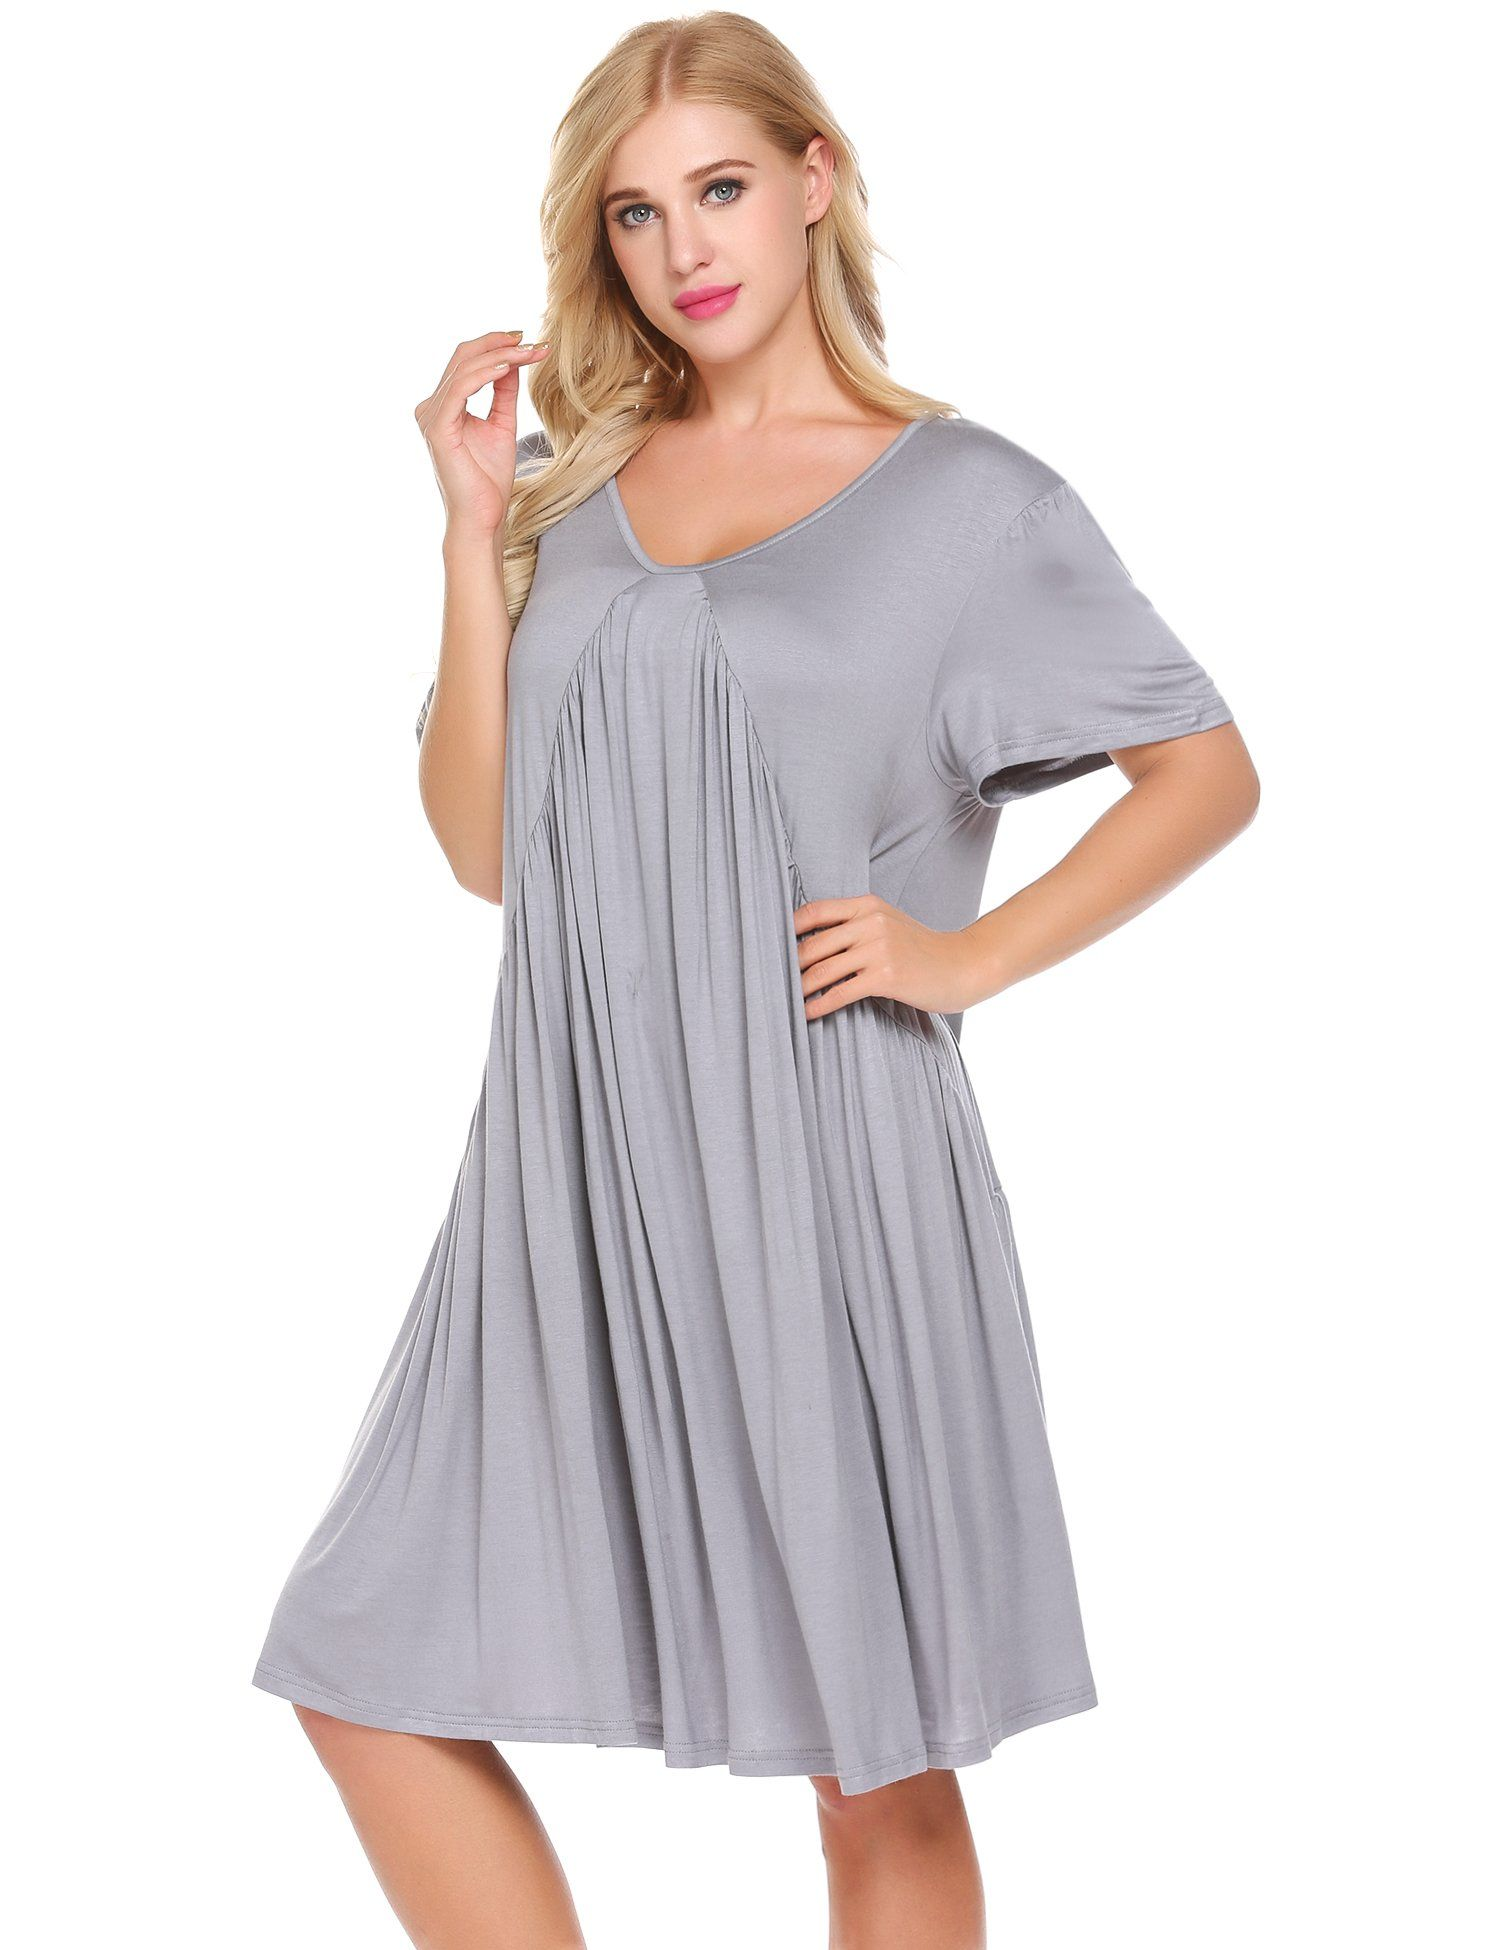 d5f3fc6e85c70 nursing tops - Ekouaer Womens KneeLength Short Sleeve Casual Maternity  Dresses Solid Elegant Pregnancy ClothesMediumLight Grey